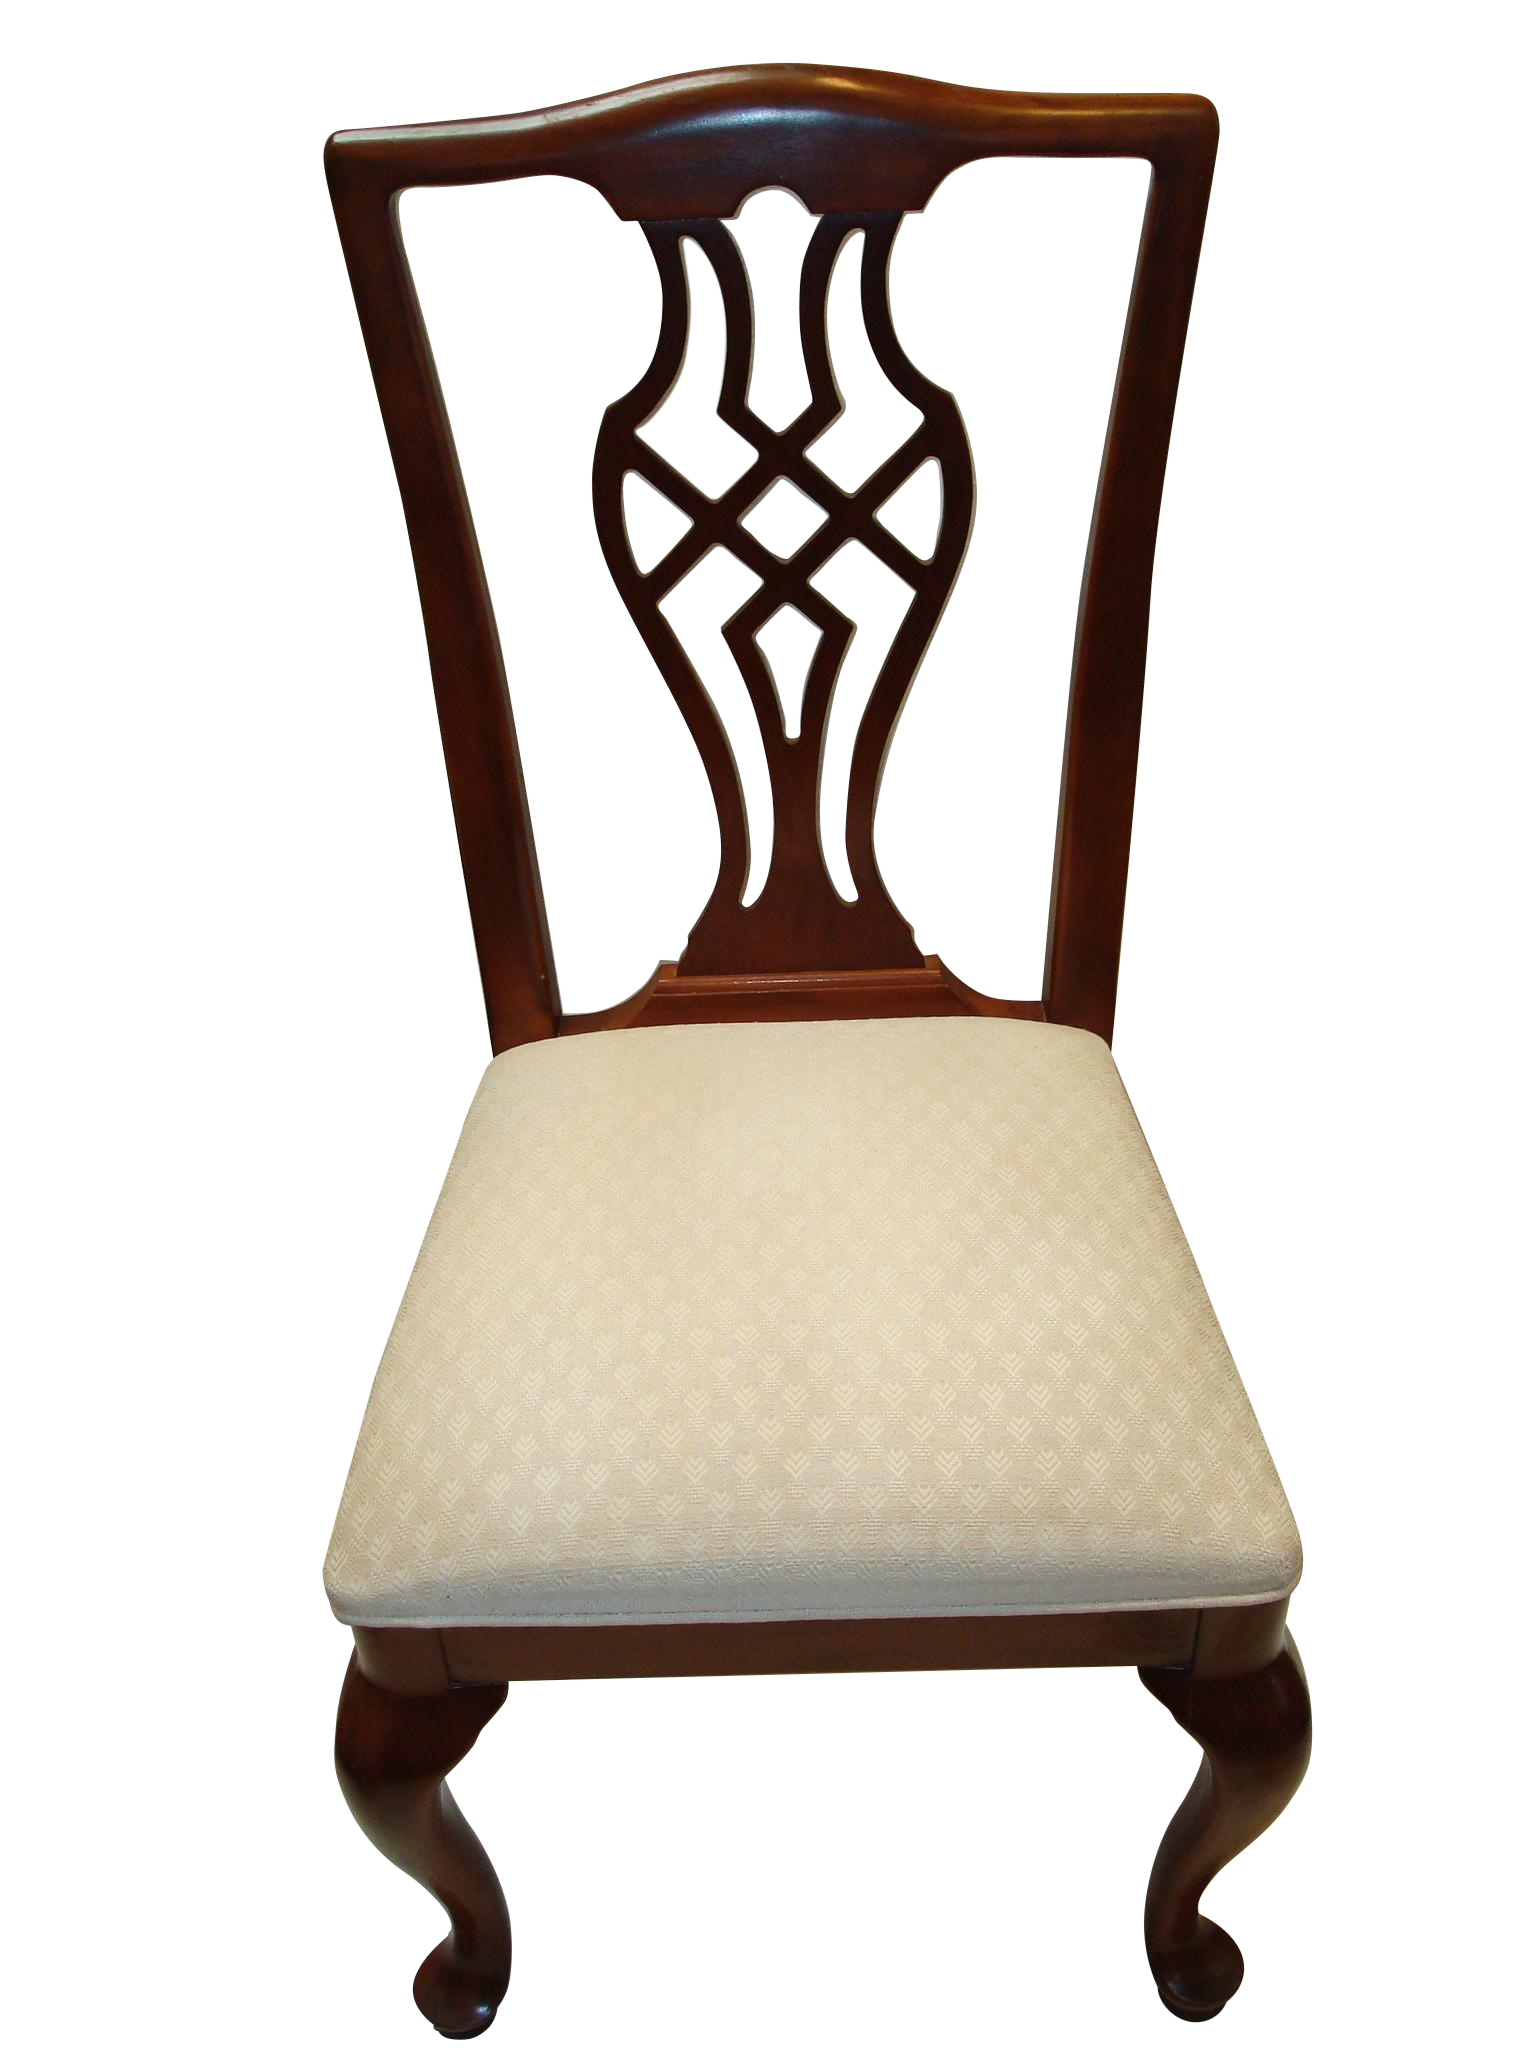 Drexel Heritage Dining Chairs Set Of Six Mahogany Wood And Ivory Cream Woven Seat Covers With Welt All Clean And In Excel Dining Chairs Chair Dining Chair Set